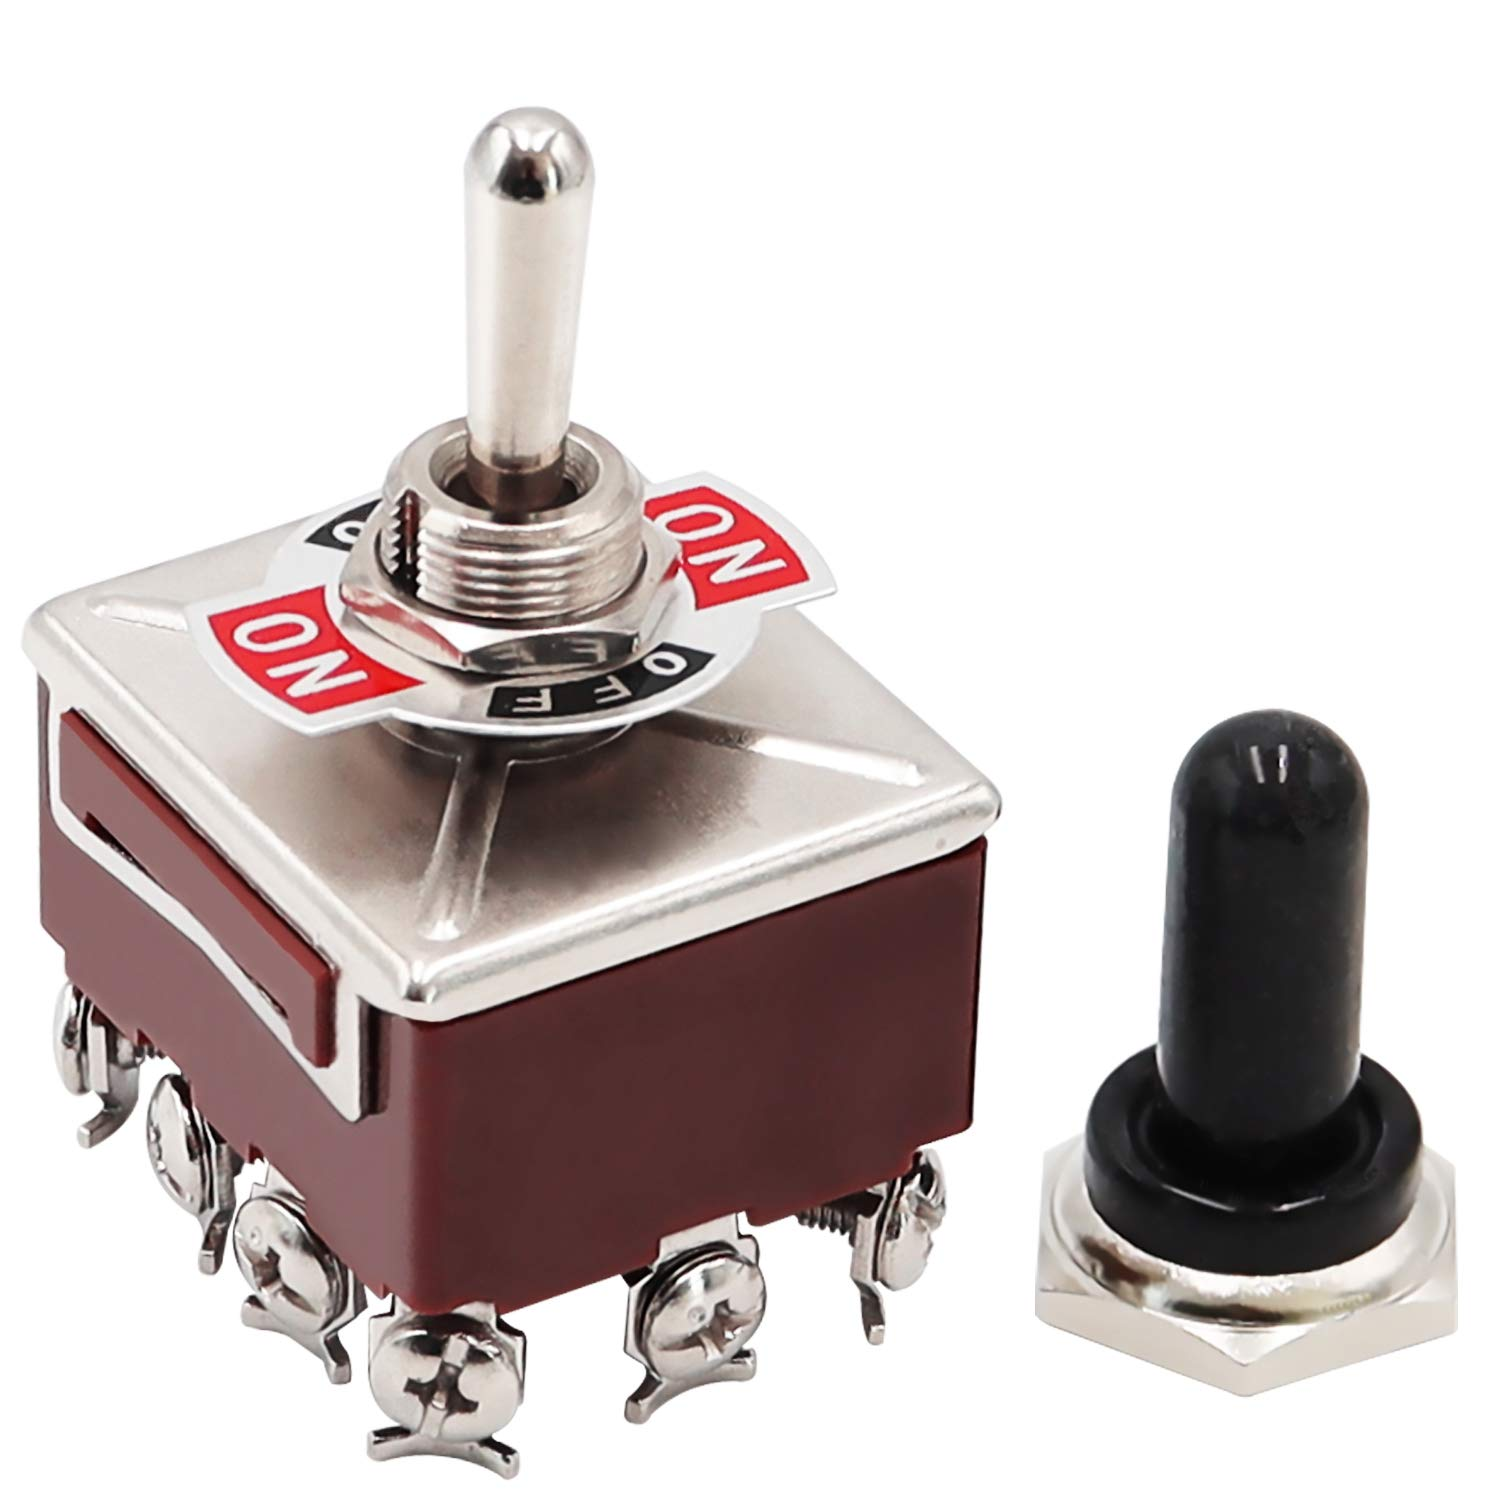 mxuteuk Heavy Duty Rocker Toggle Switch 3 Position 4PDT 12 Terminal ON/Off/ON 15A 250V 10A 380V Toggle Switches with Metal Knob Cover Cap Waterproof TEN-403